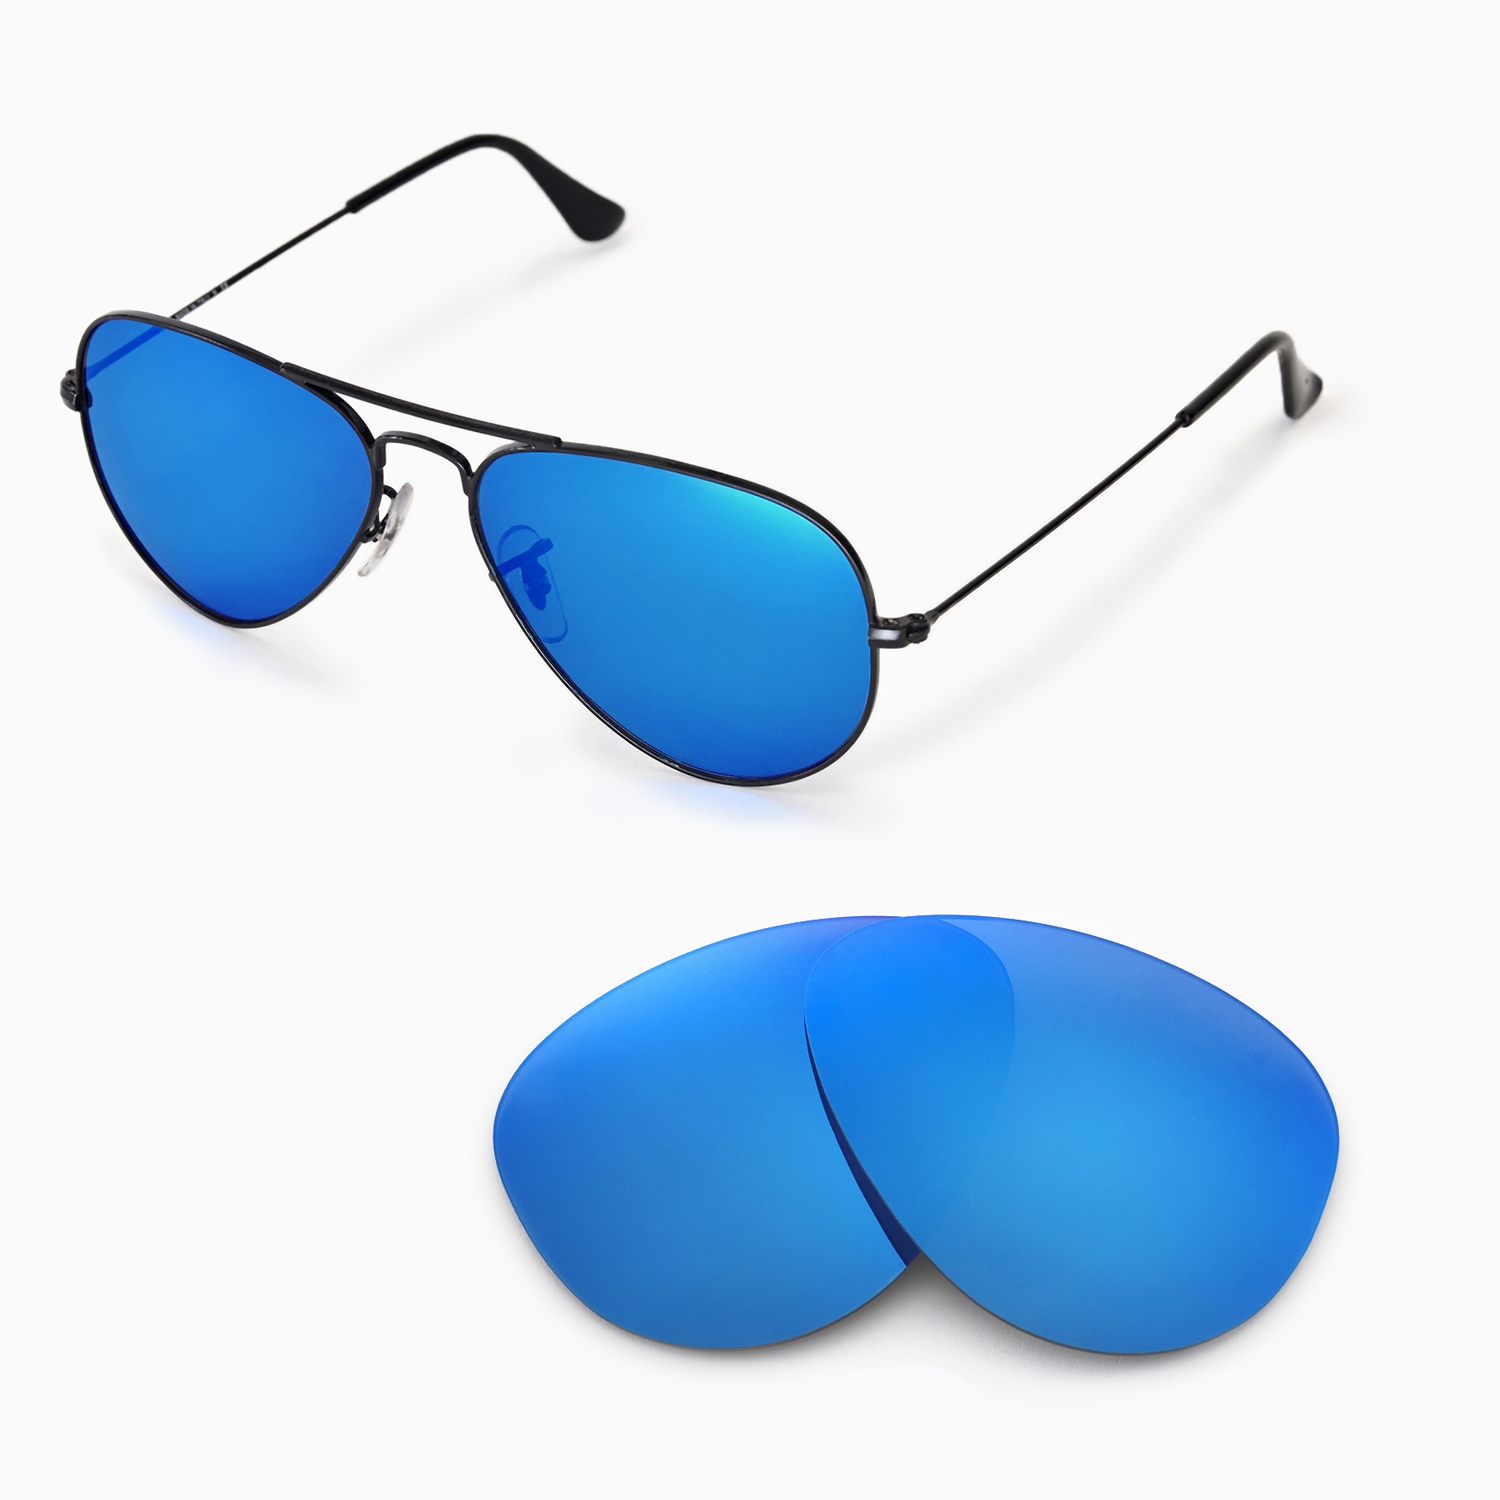 3c65a5a236f Details about Walleva Polarized Ice Blue Lenses 4 Ray-Ban Aviator Large  Metal RB3025 55mm